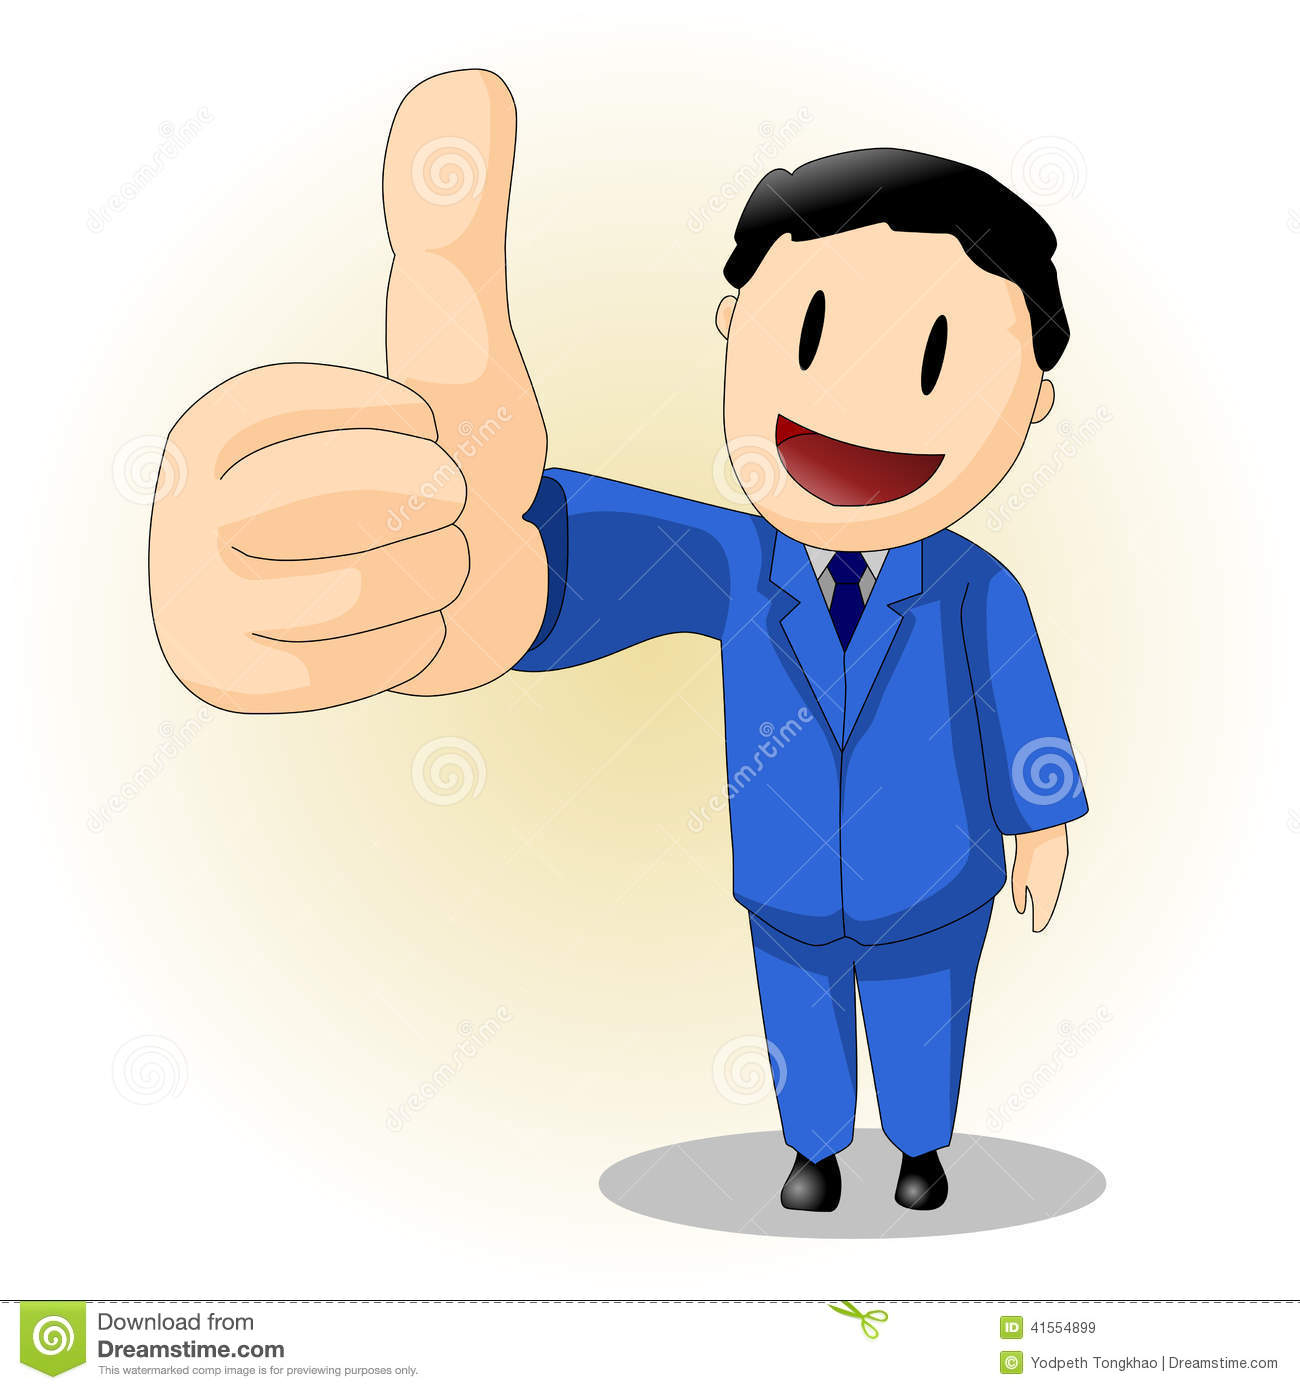 Cartoon Guy With Thumbs Up Pictures to Pin on Pinterest ...